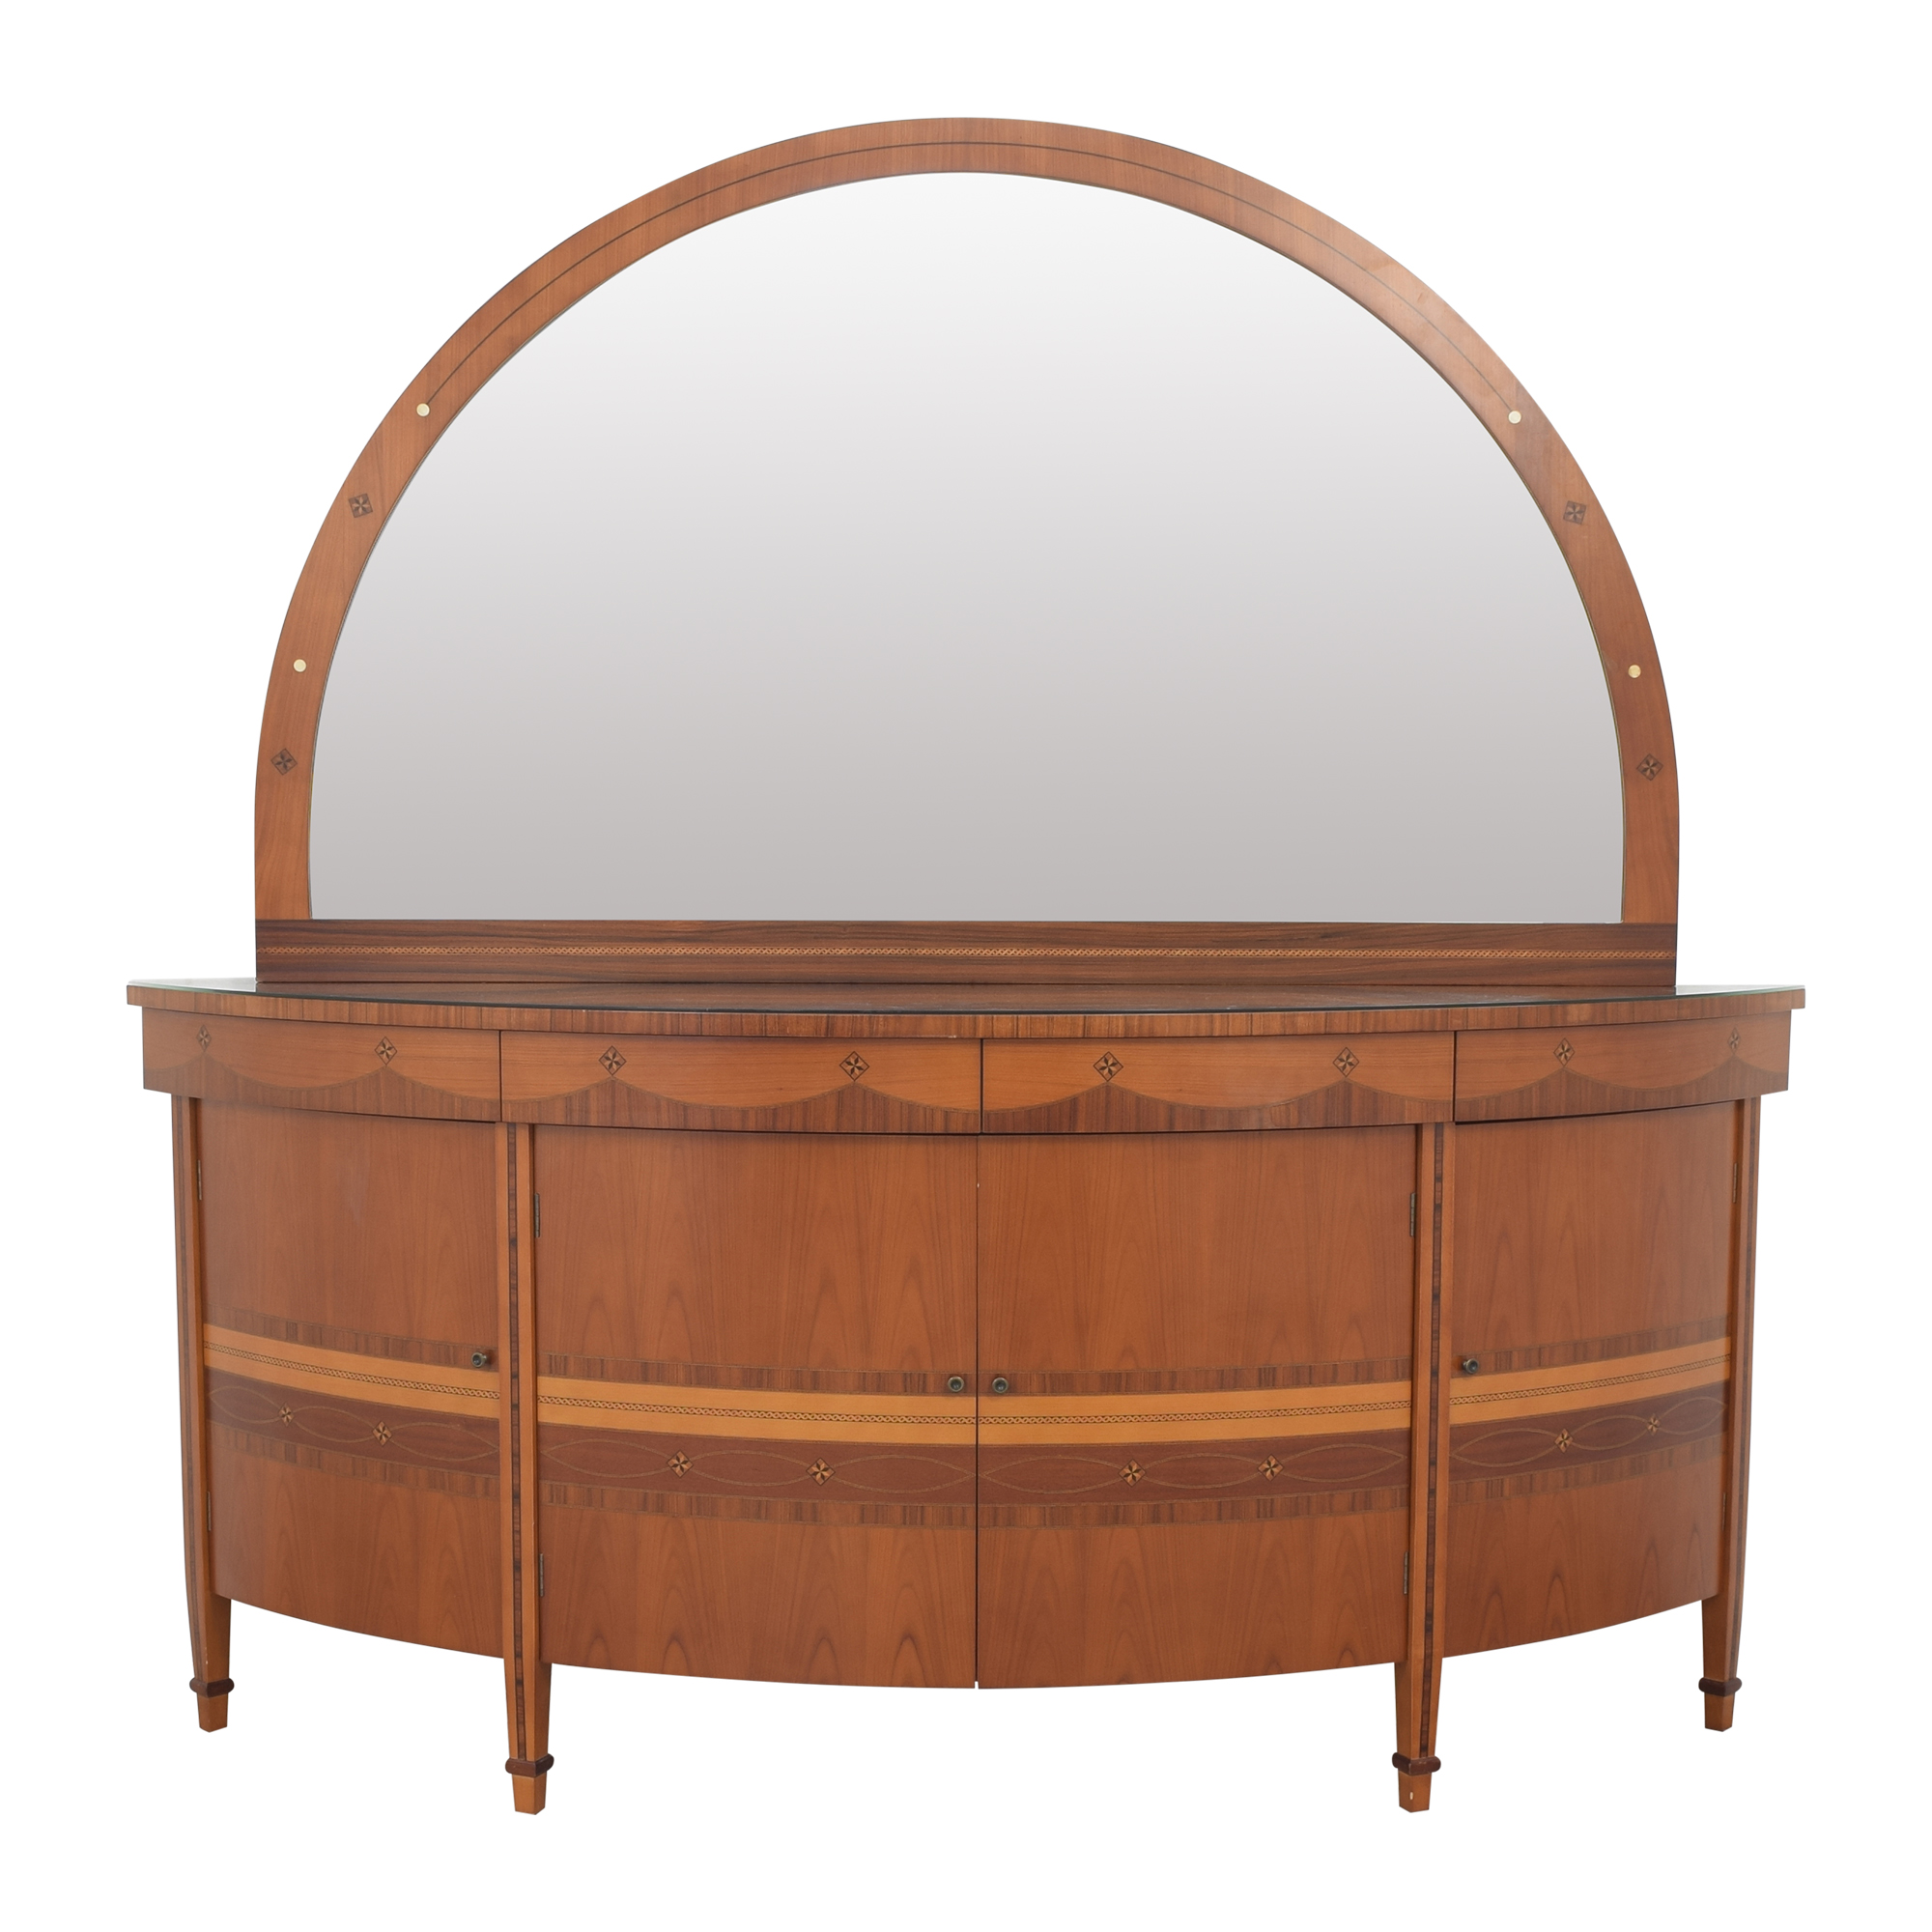 World of Decor World of Decor Sideboard with Mirror on sale